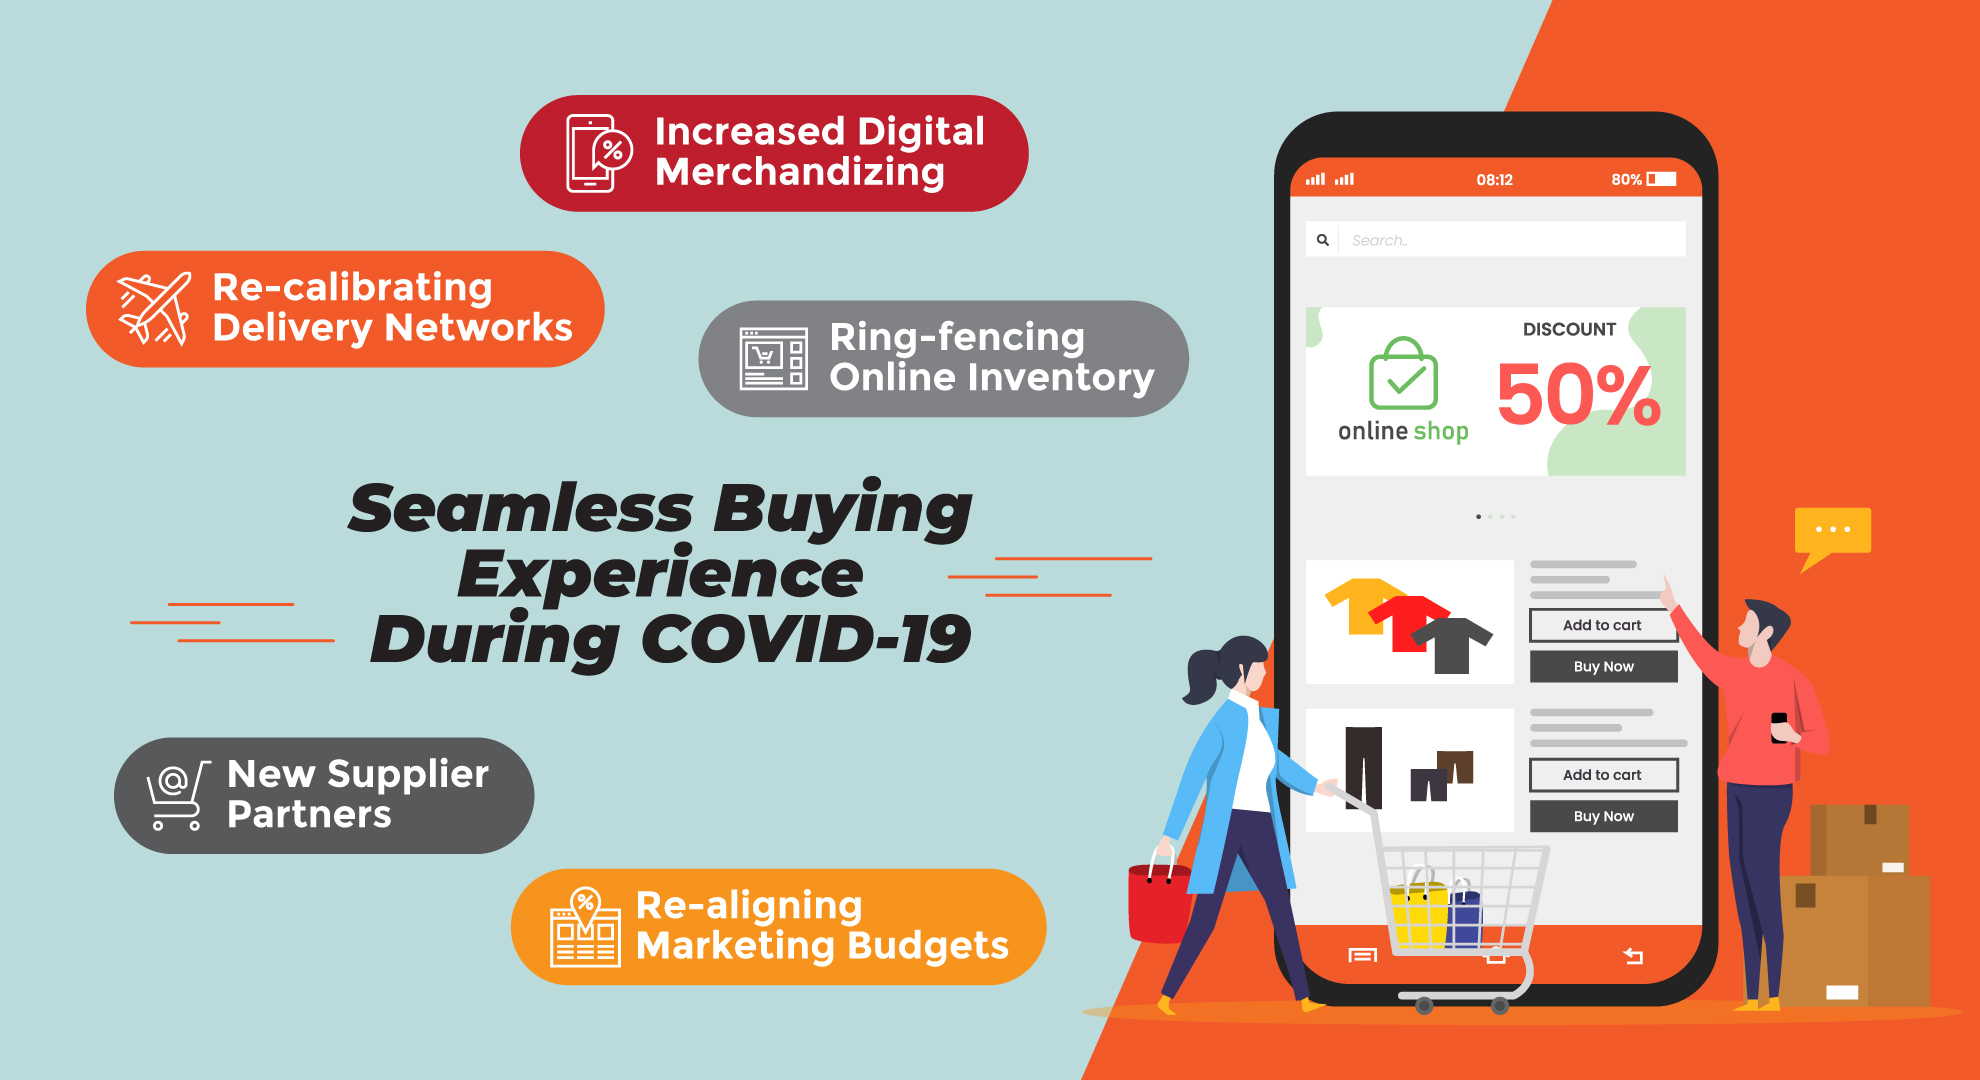 Seamless Buying Experience During COVID-19